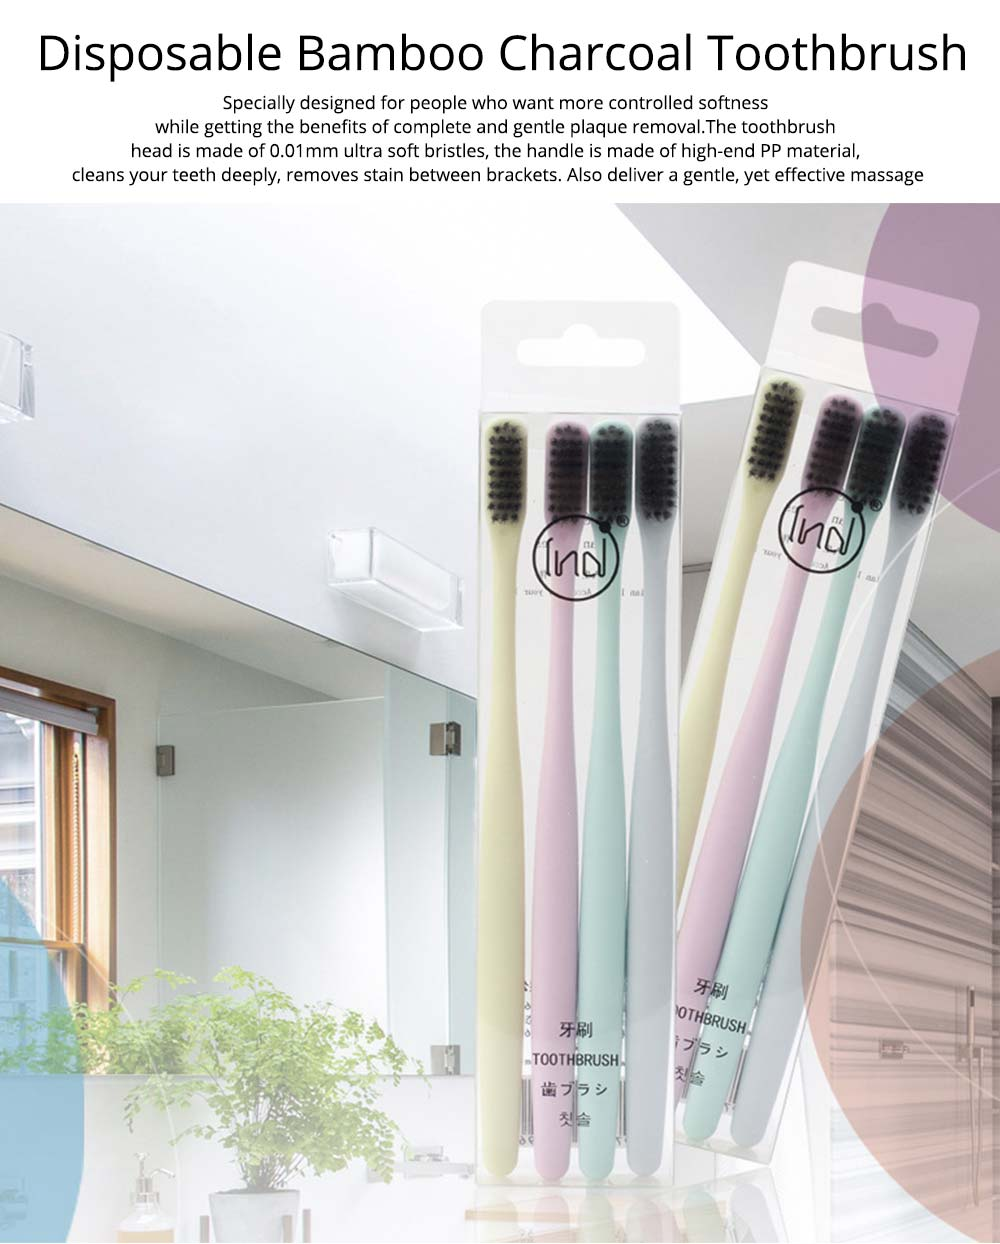 Household Ultra Soft Toothbrushes Available for Men Women Kids, Hotel Travel Use Bamboo Charcoal Toothbrush 4 Pieces 0